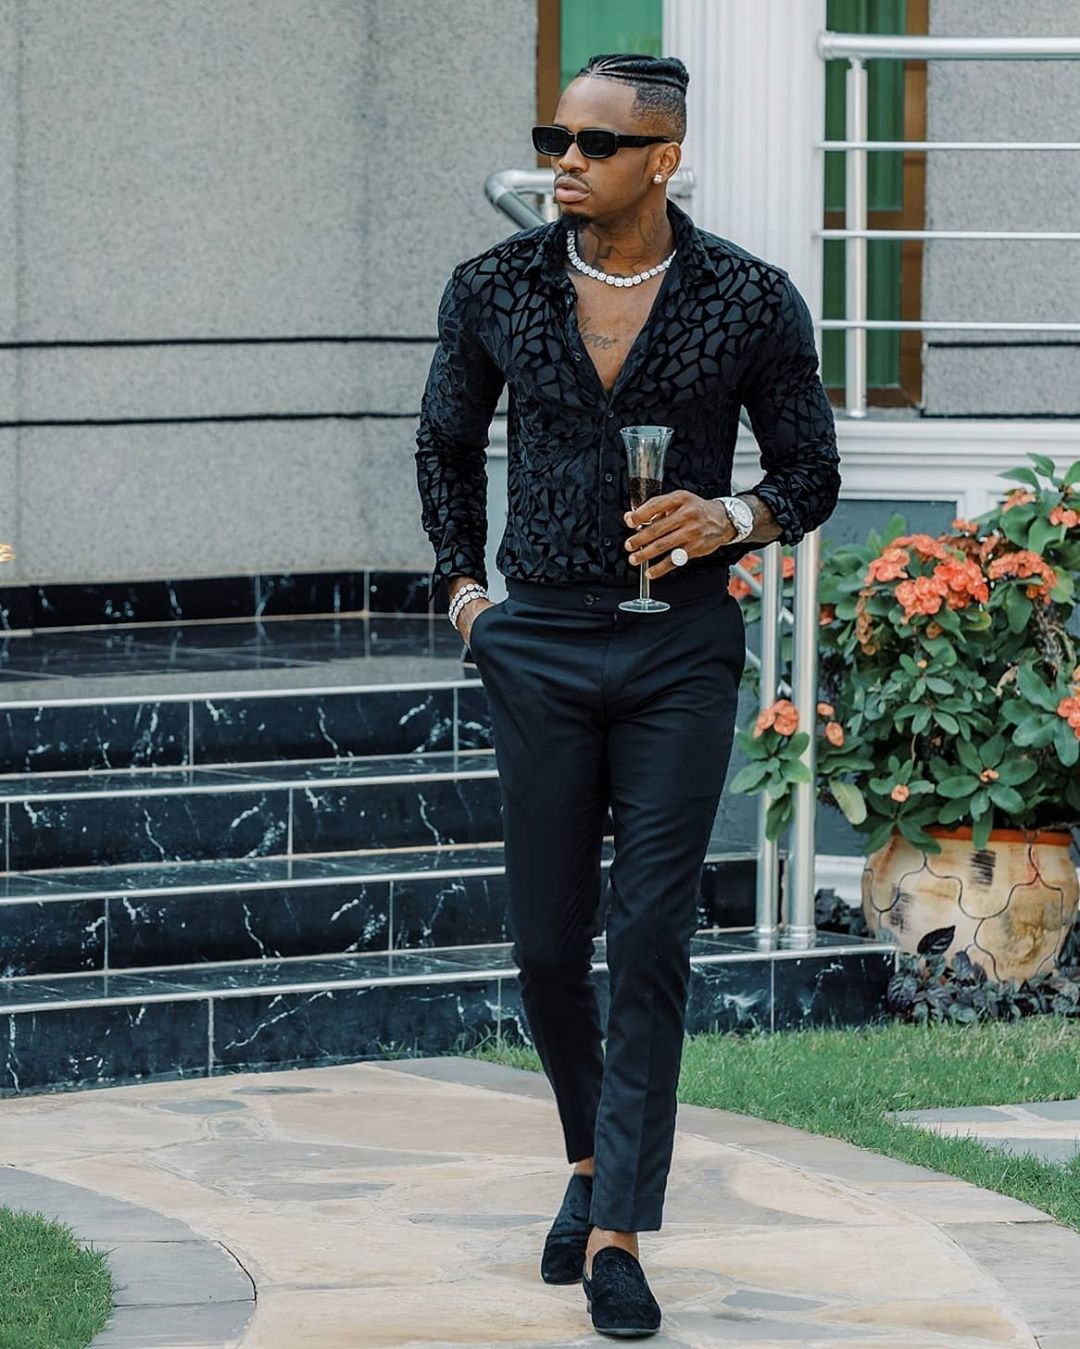 africa-african-male-celebrities-suit-formal-best-dressed-fashion-style-rave